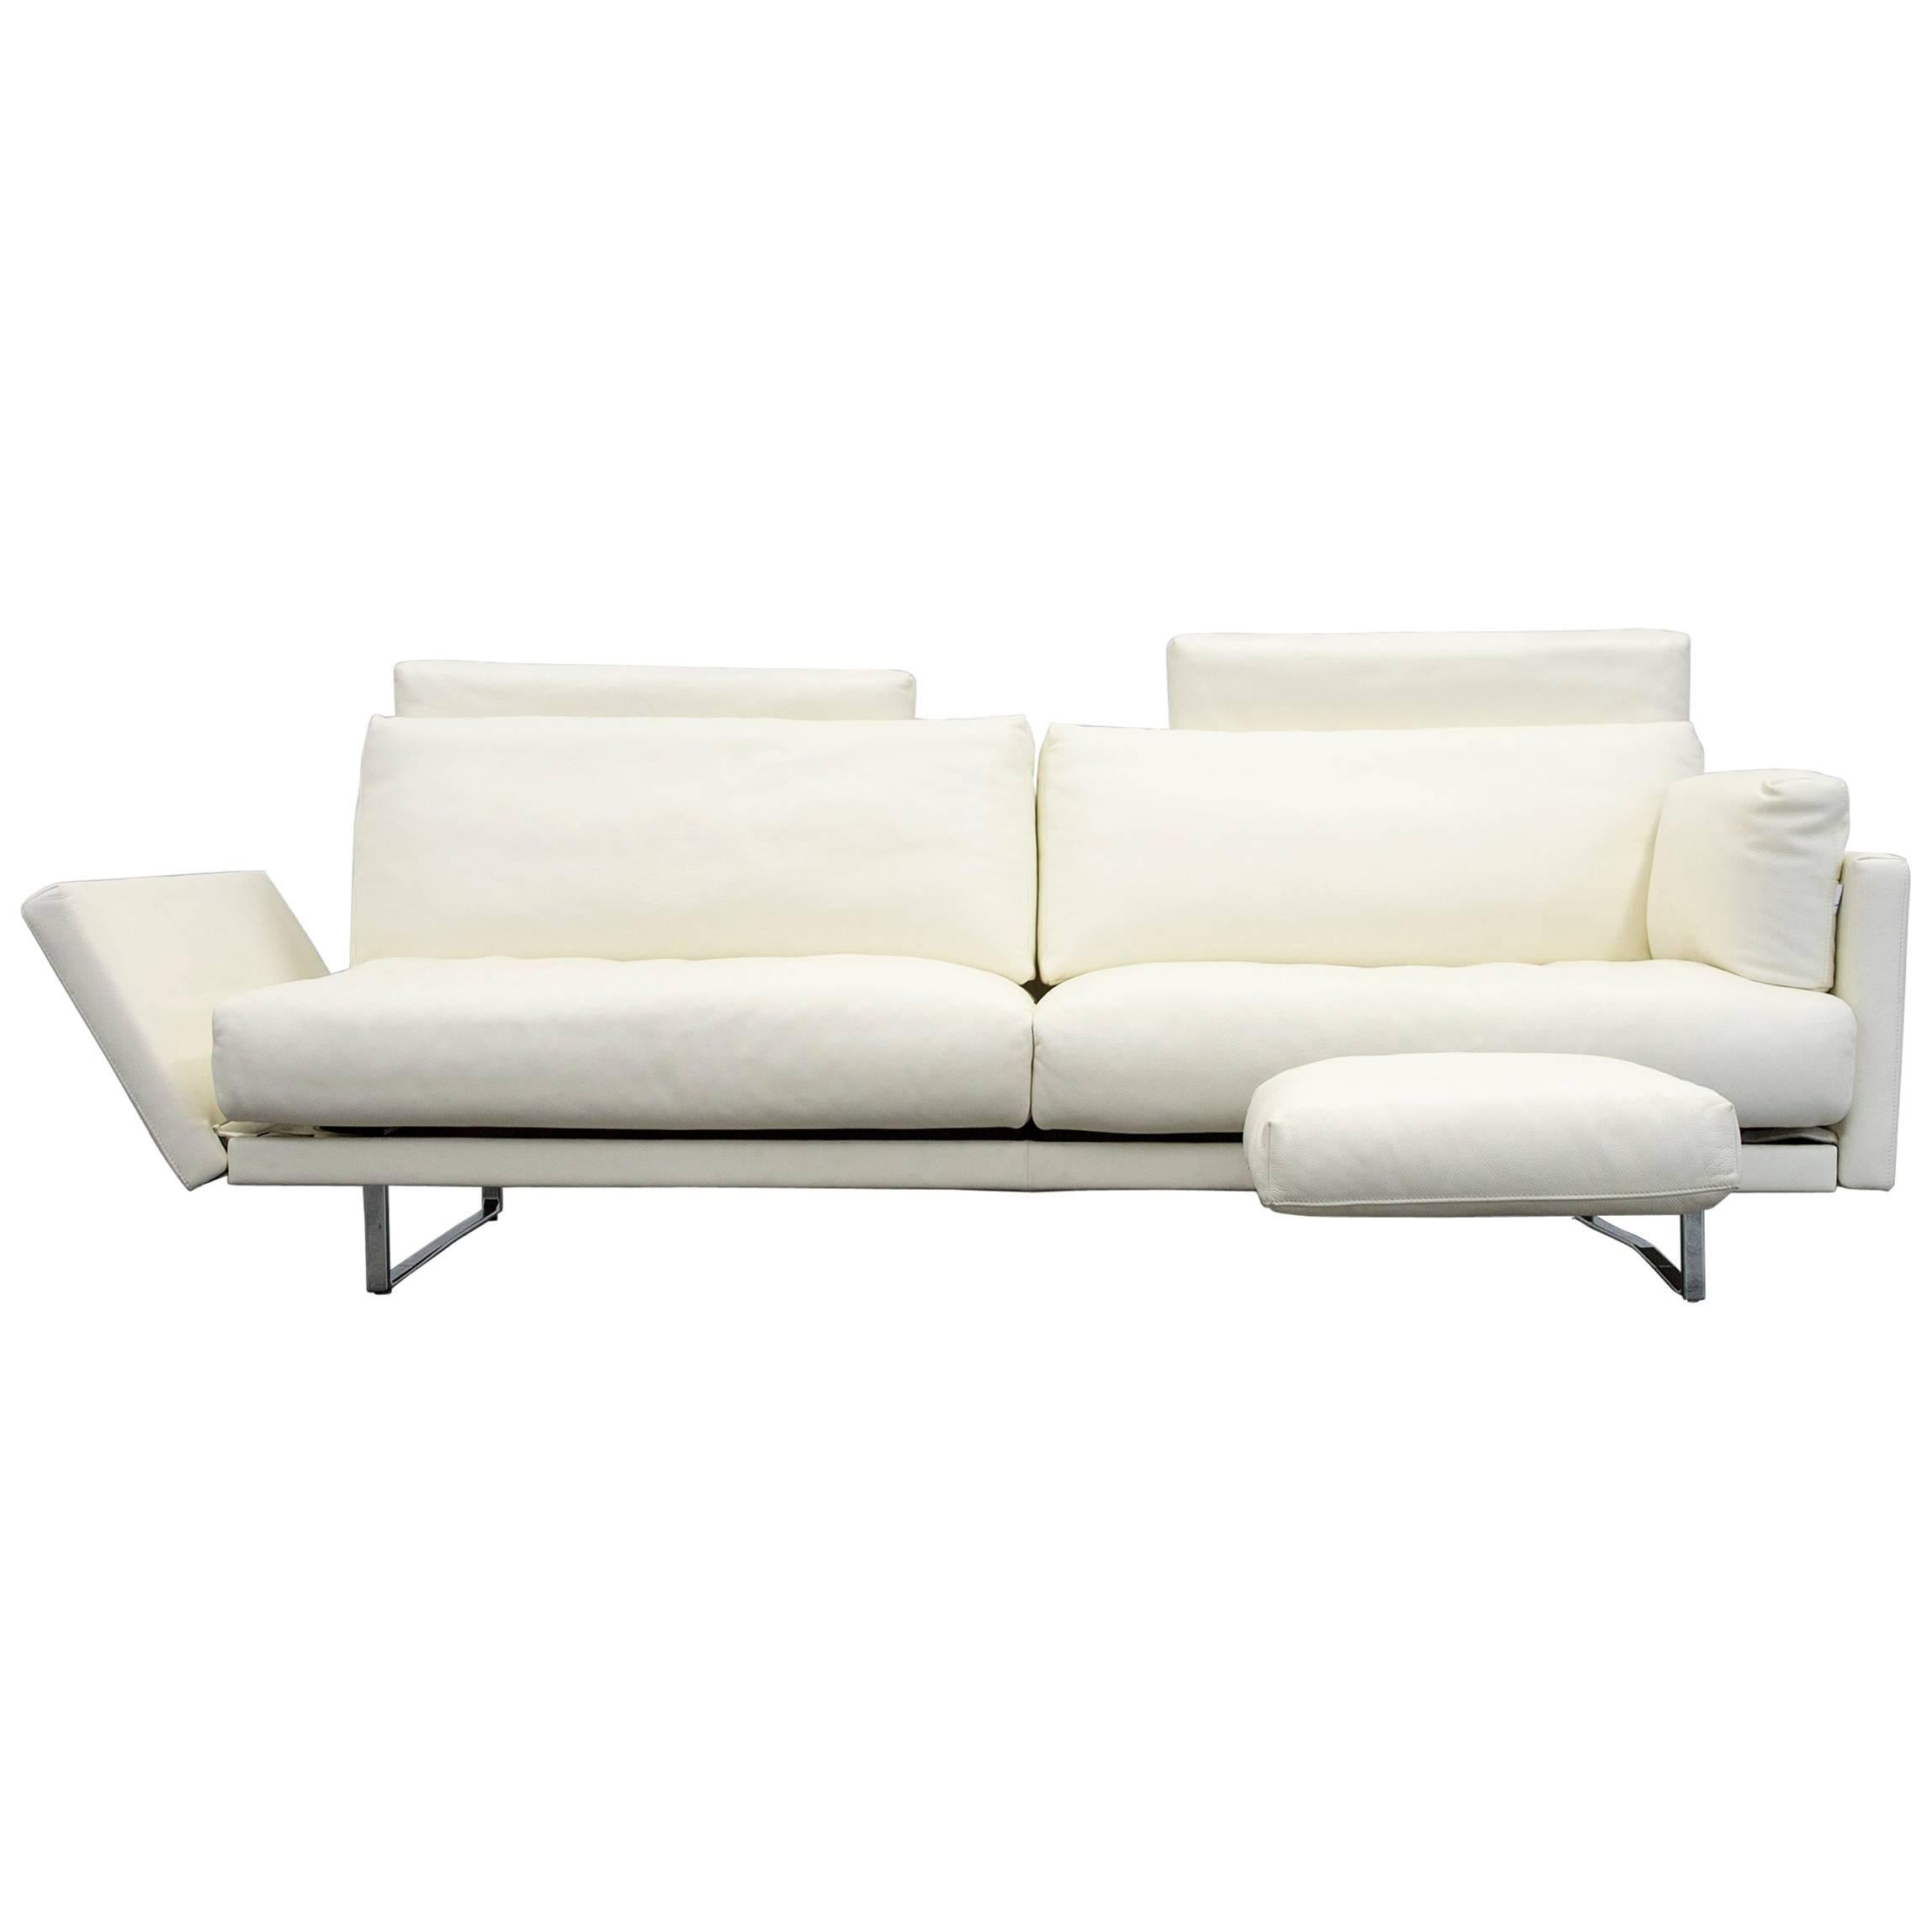 FSM Varino Leather Couch Crème White Function Three Seat Sofa